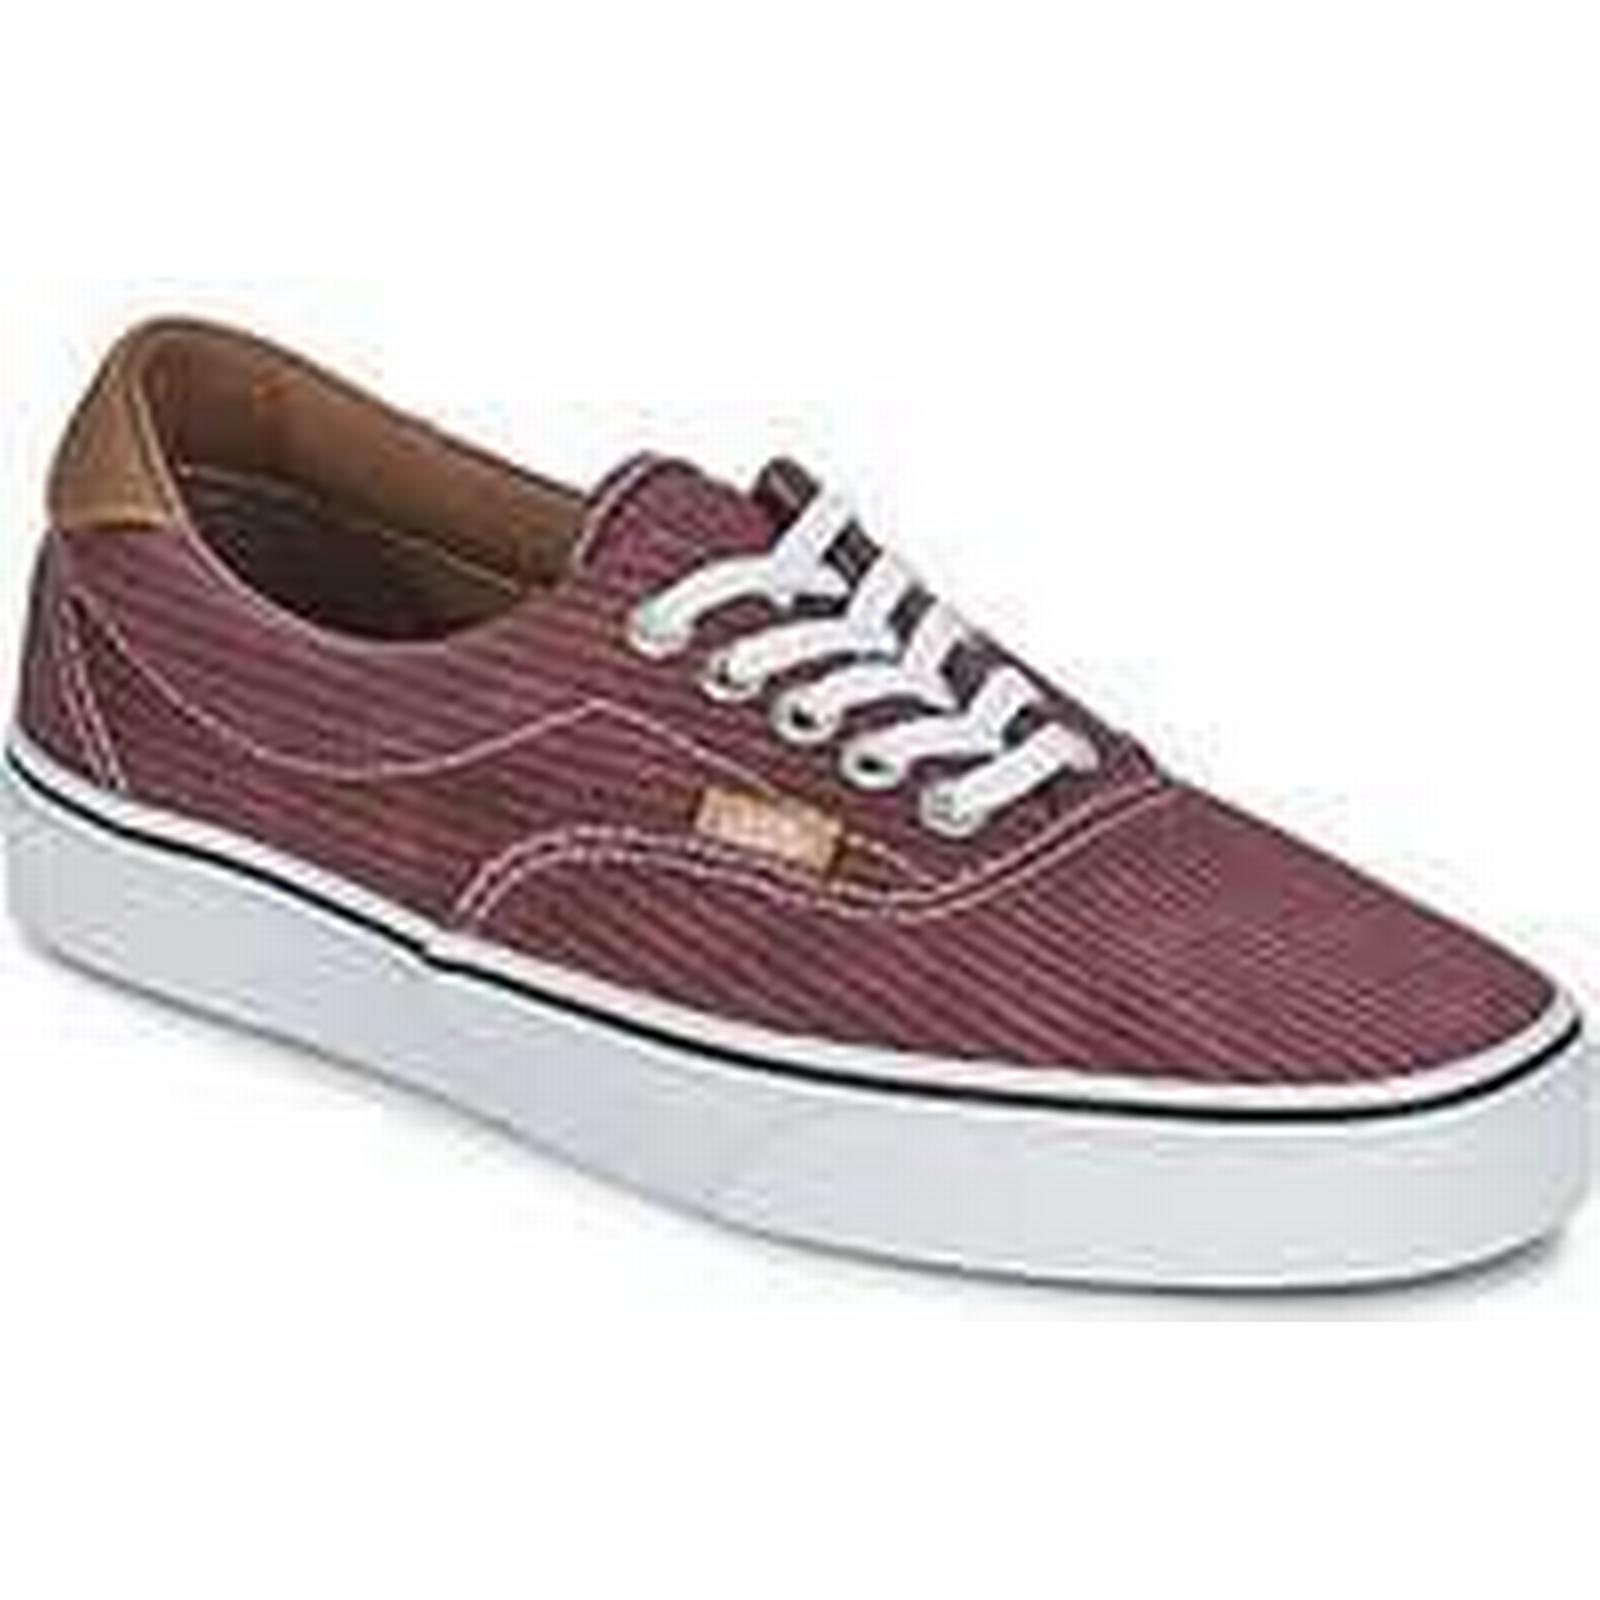 Spartoo.co.uk Shoes Vans ERA 59 women's Shoes Spartoo.co.uk (Trainers) in Red a4a400